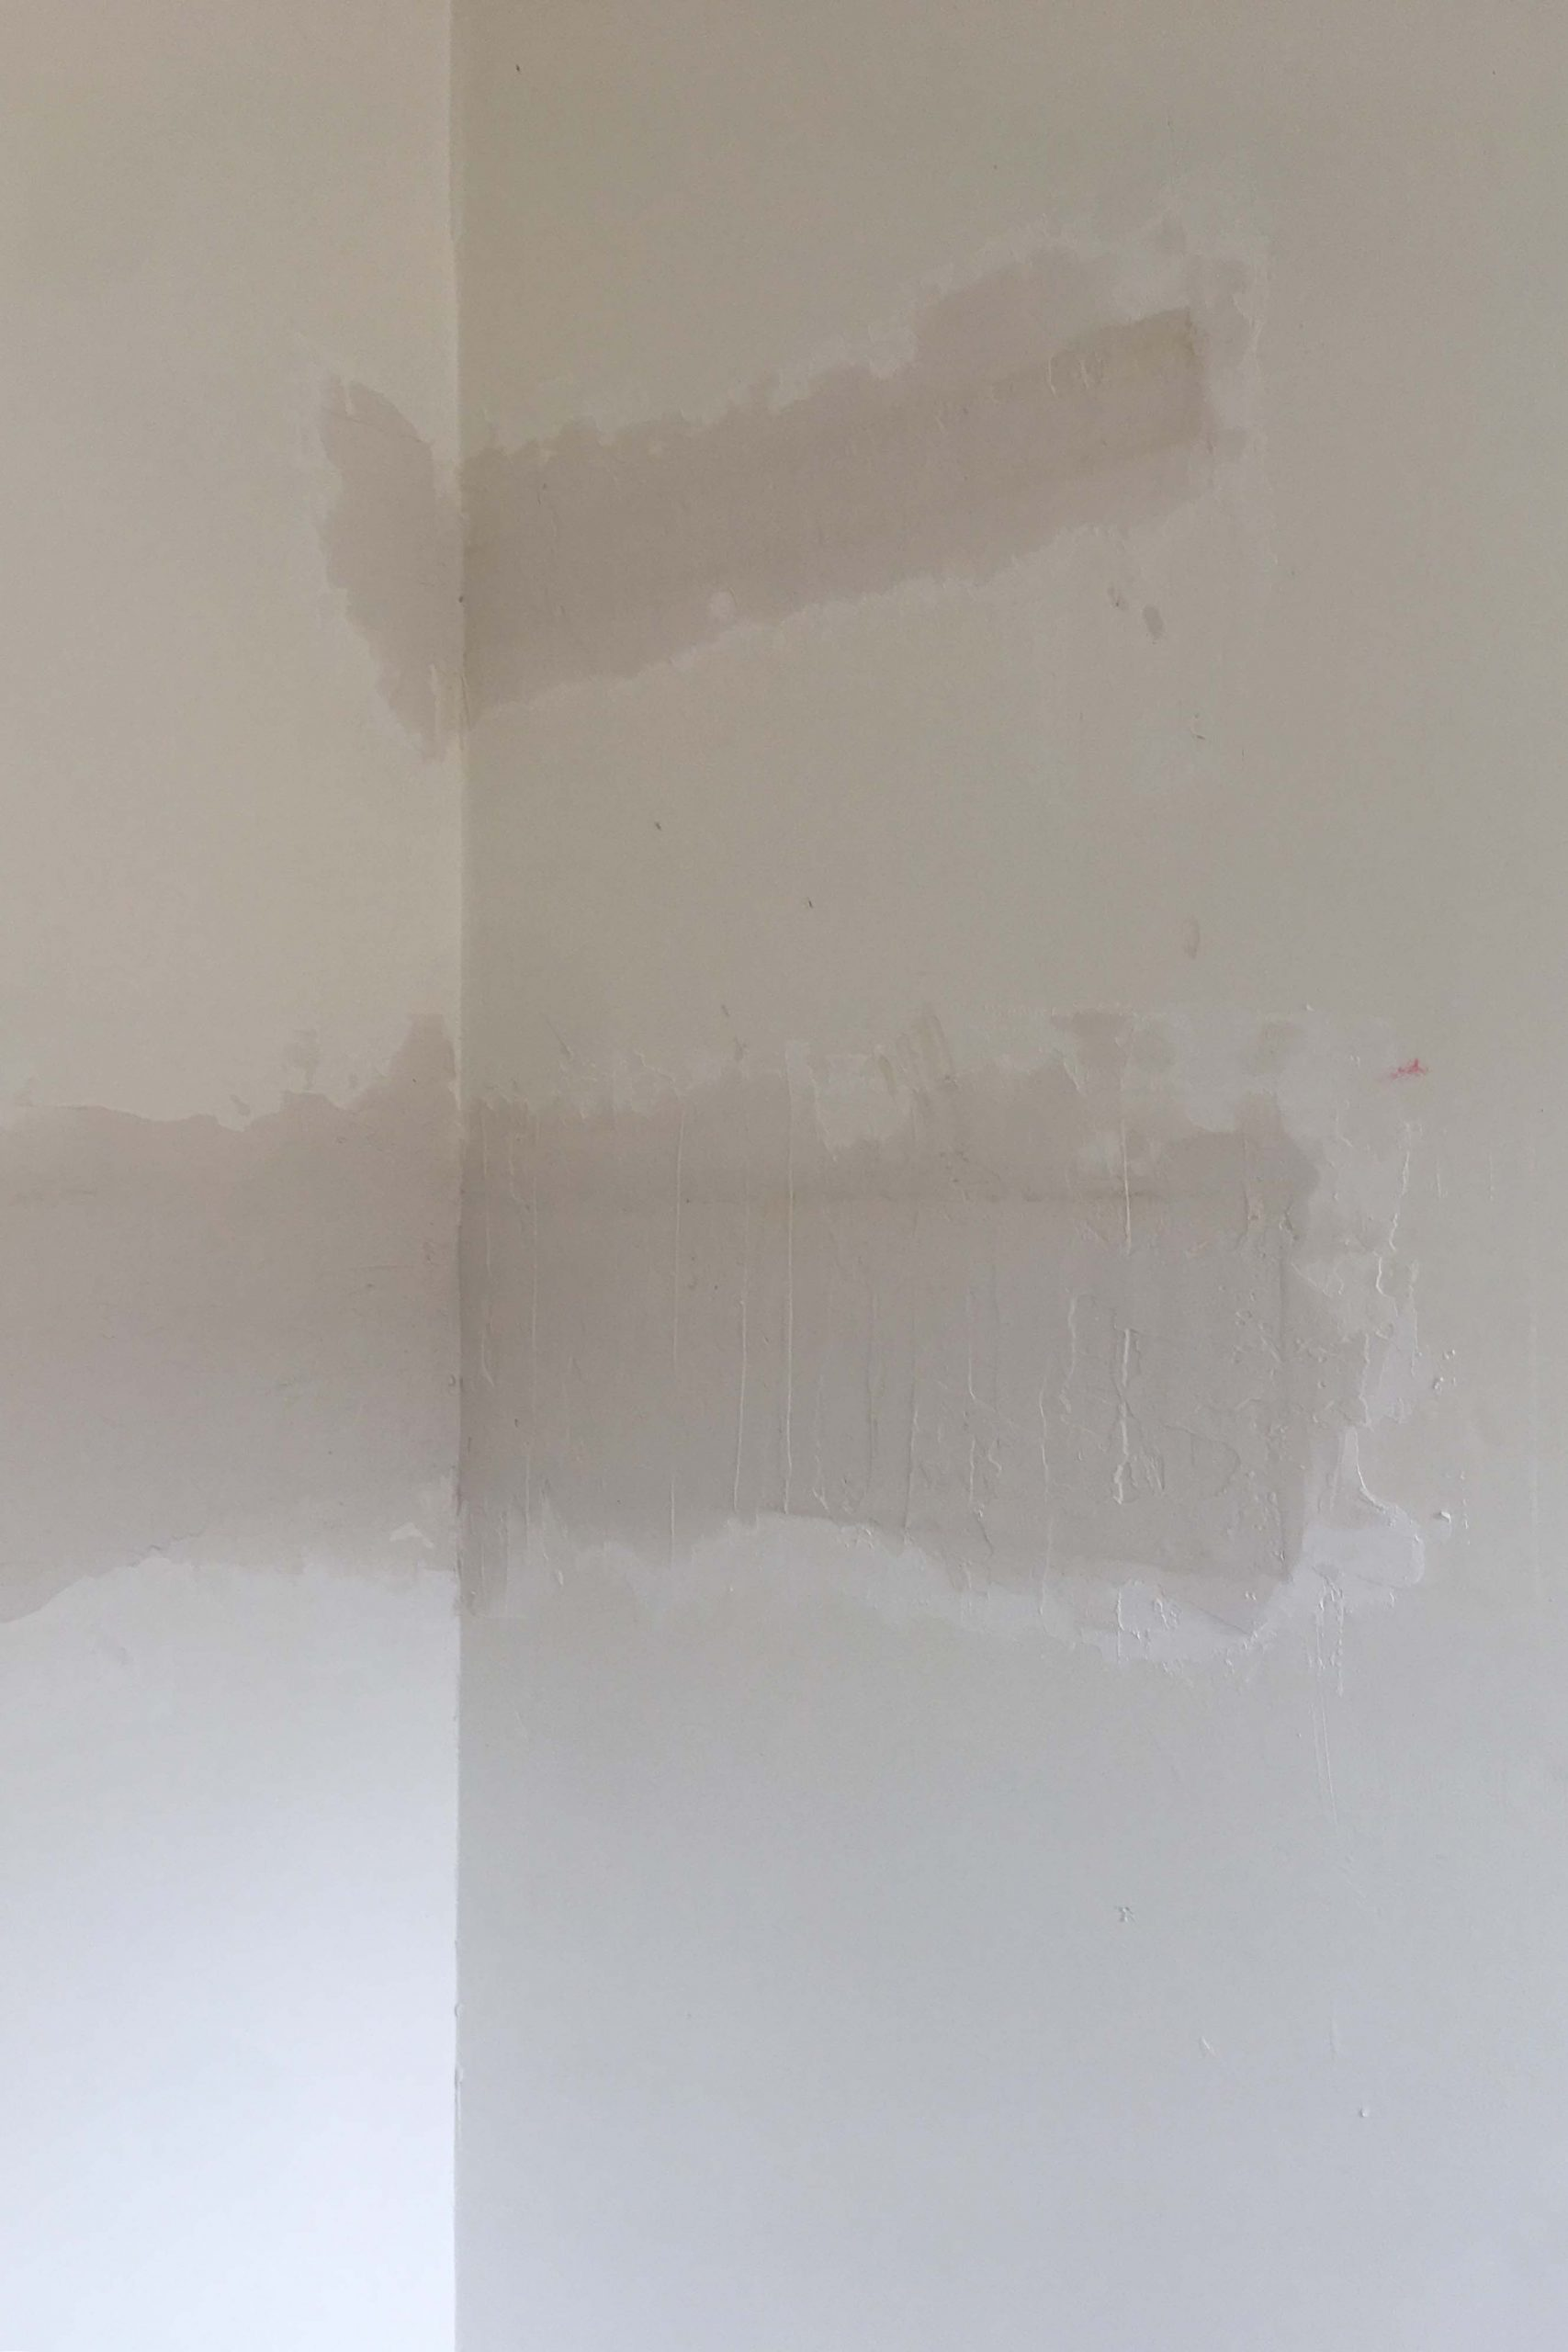 Closet Plaster Repair After